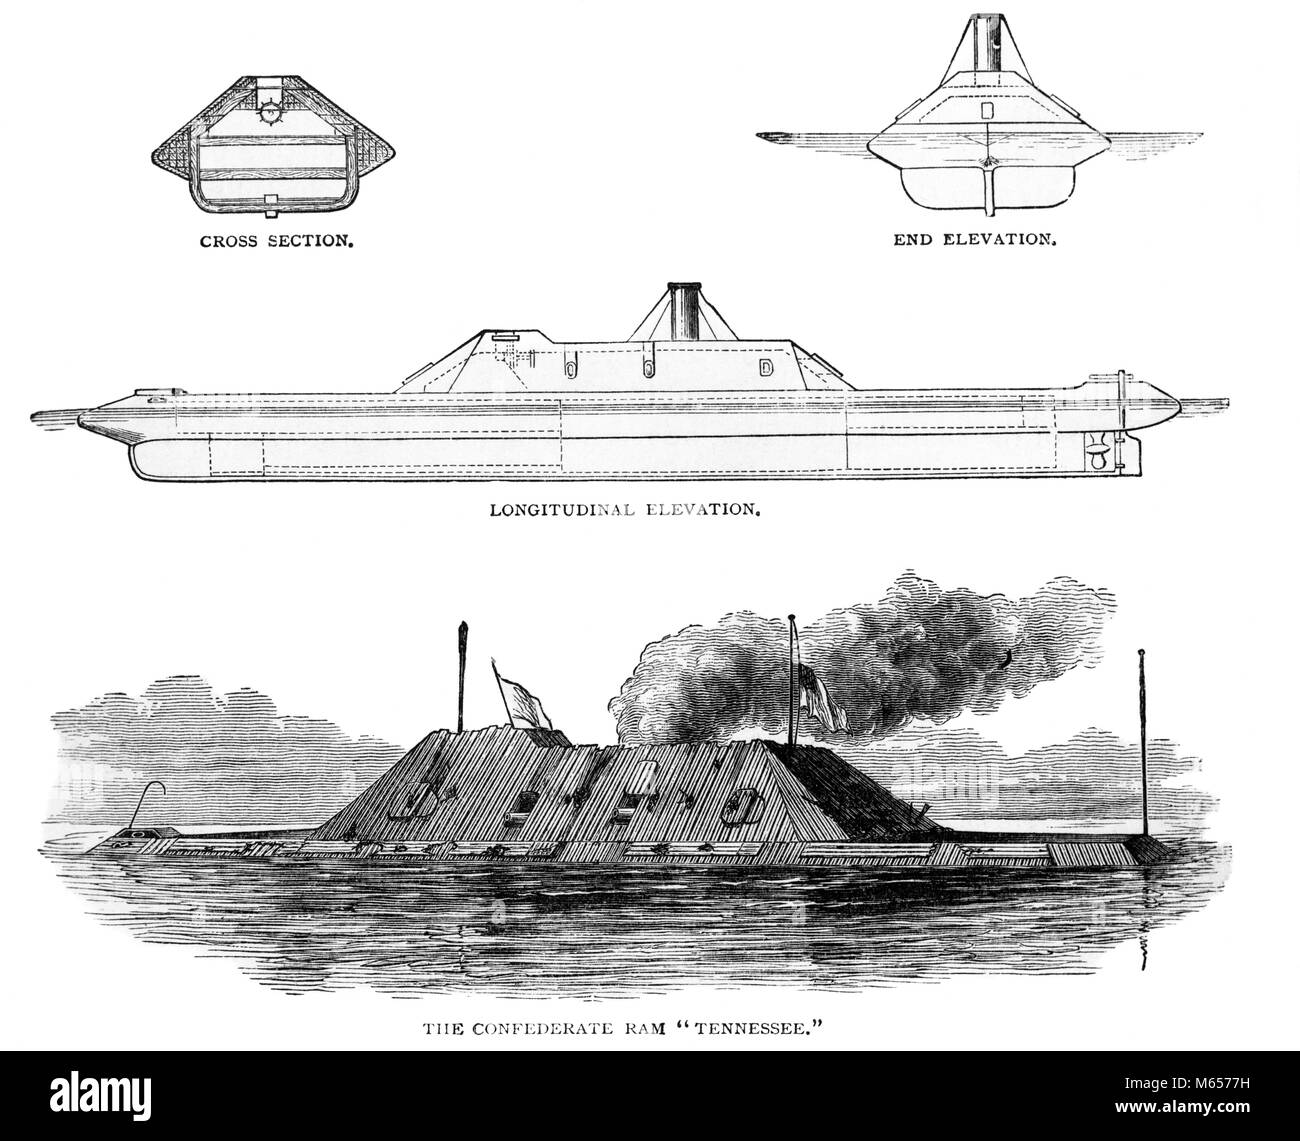 1860s AMERICAN CIVIL WAR CONFEDERATE NAVAL IRONCLAD RAM THE TENNESSEE VARIOUS VIEWS - h9844 HAR001 HARS RAM SCHEMATIC - Stock Image